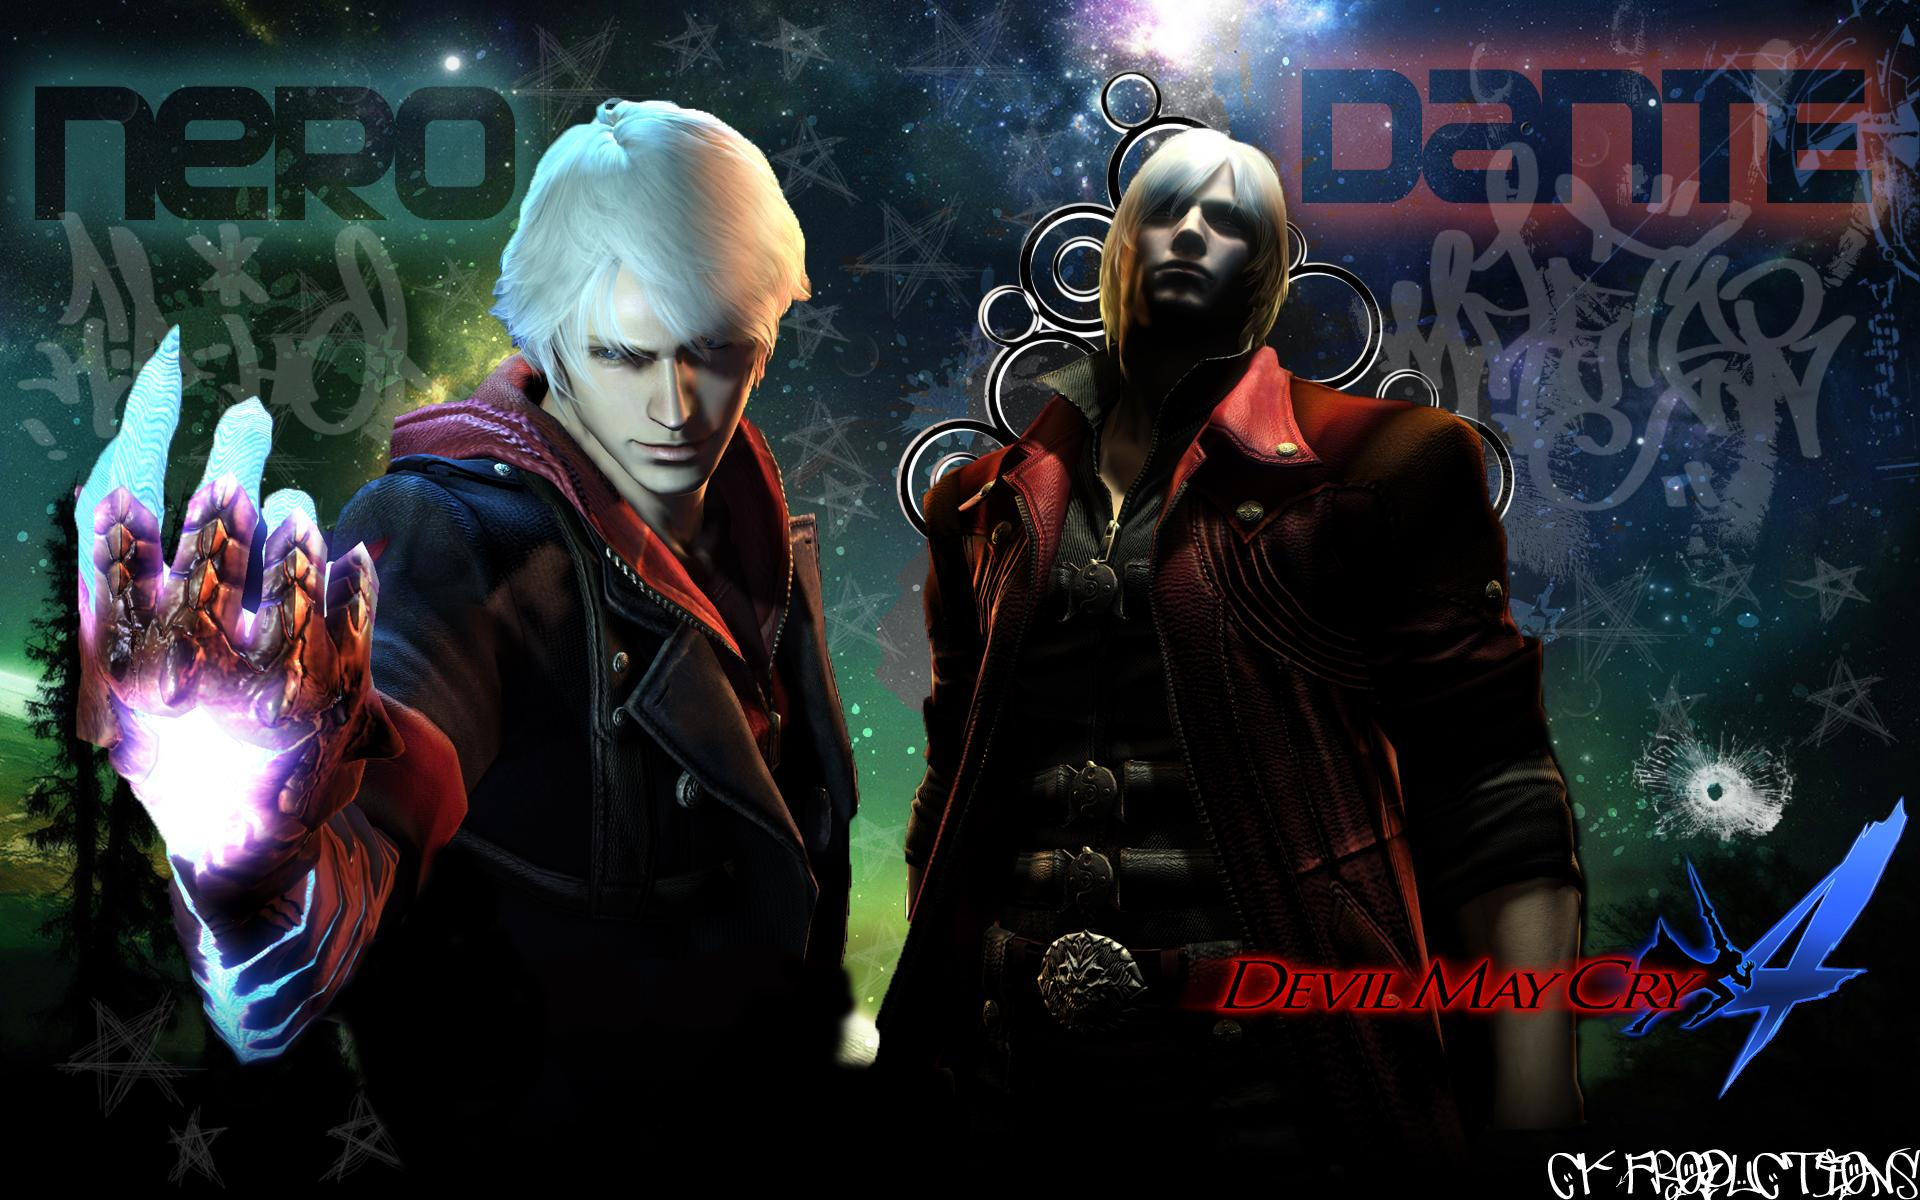 Free Download Devil May Cry 4 Wallpaper Nero Hd 1920x1200 For